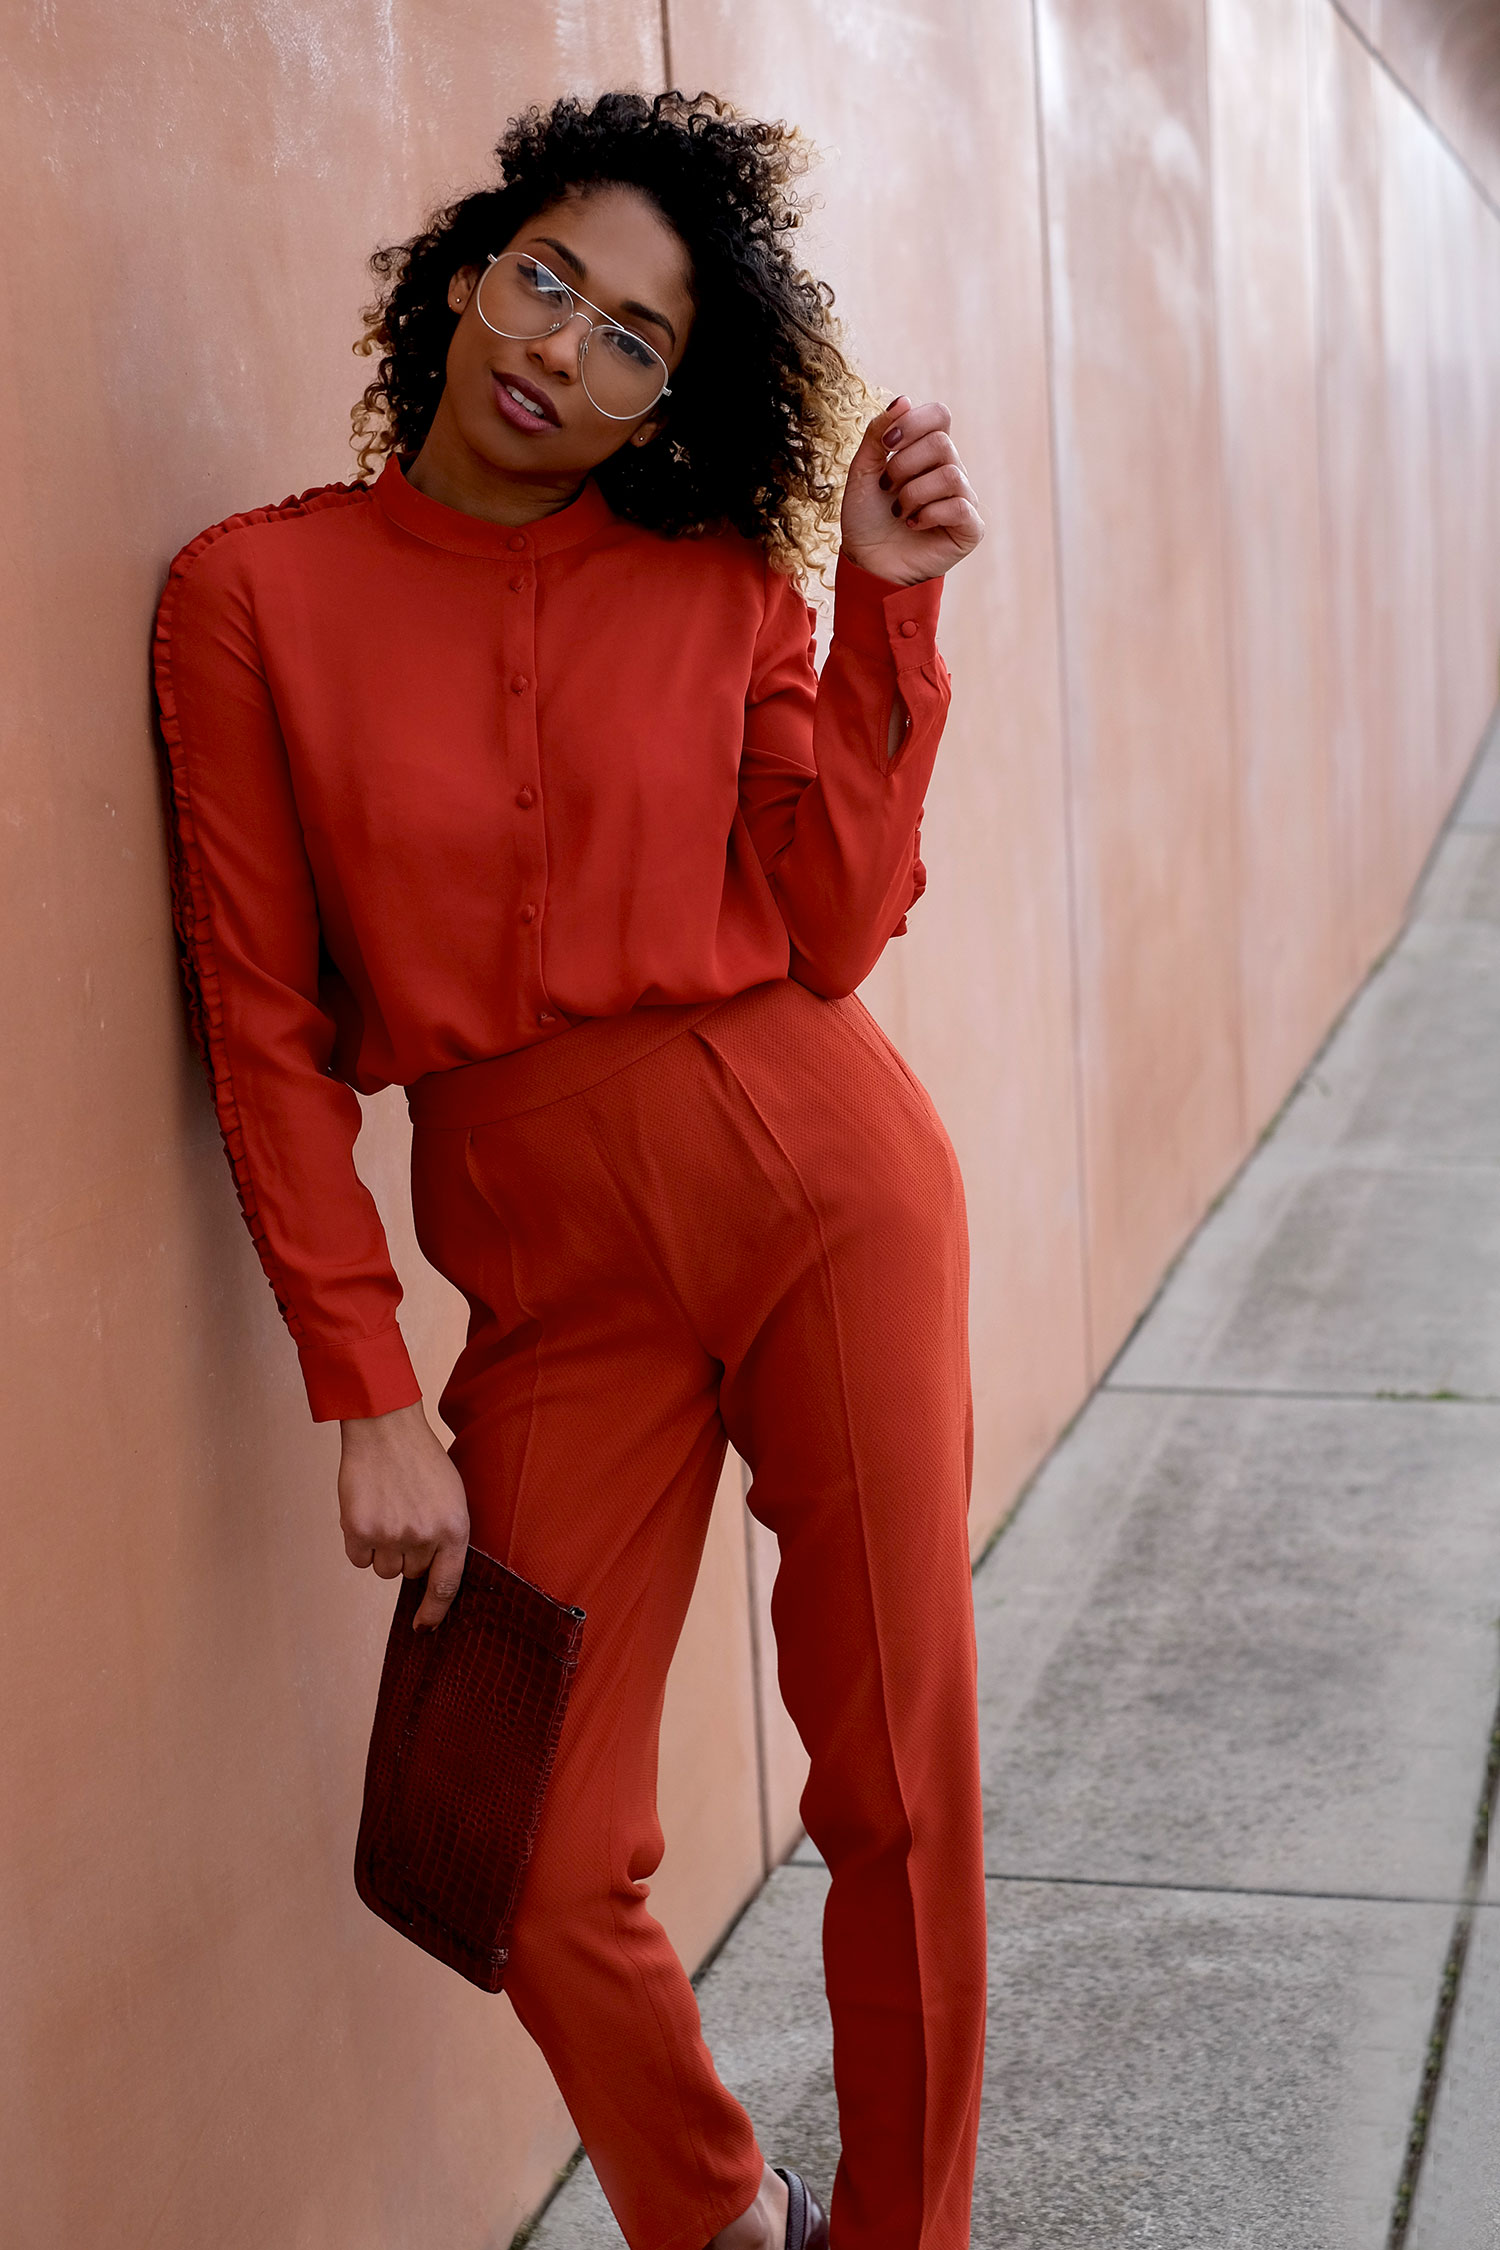 curls-all-over-lady-in-red